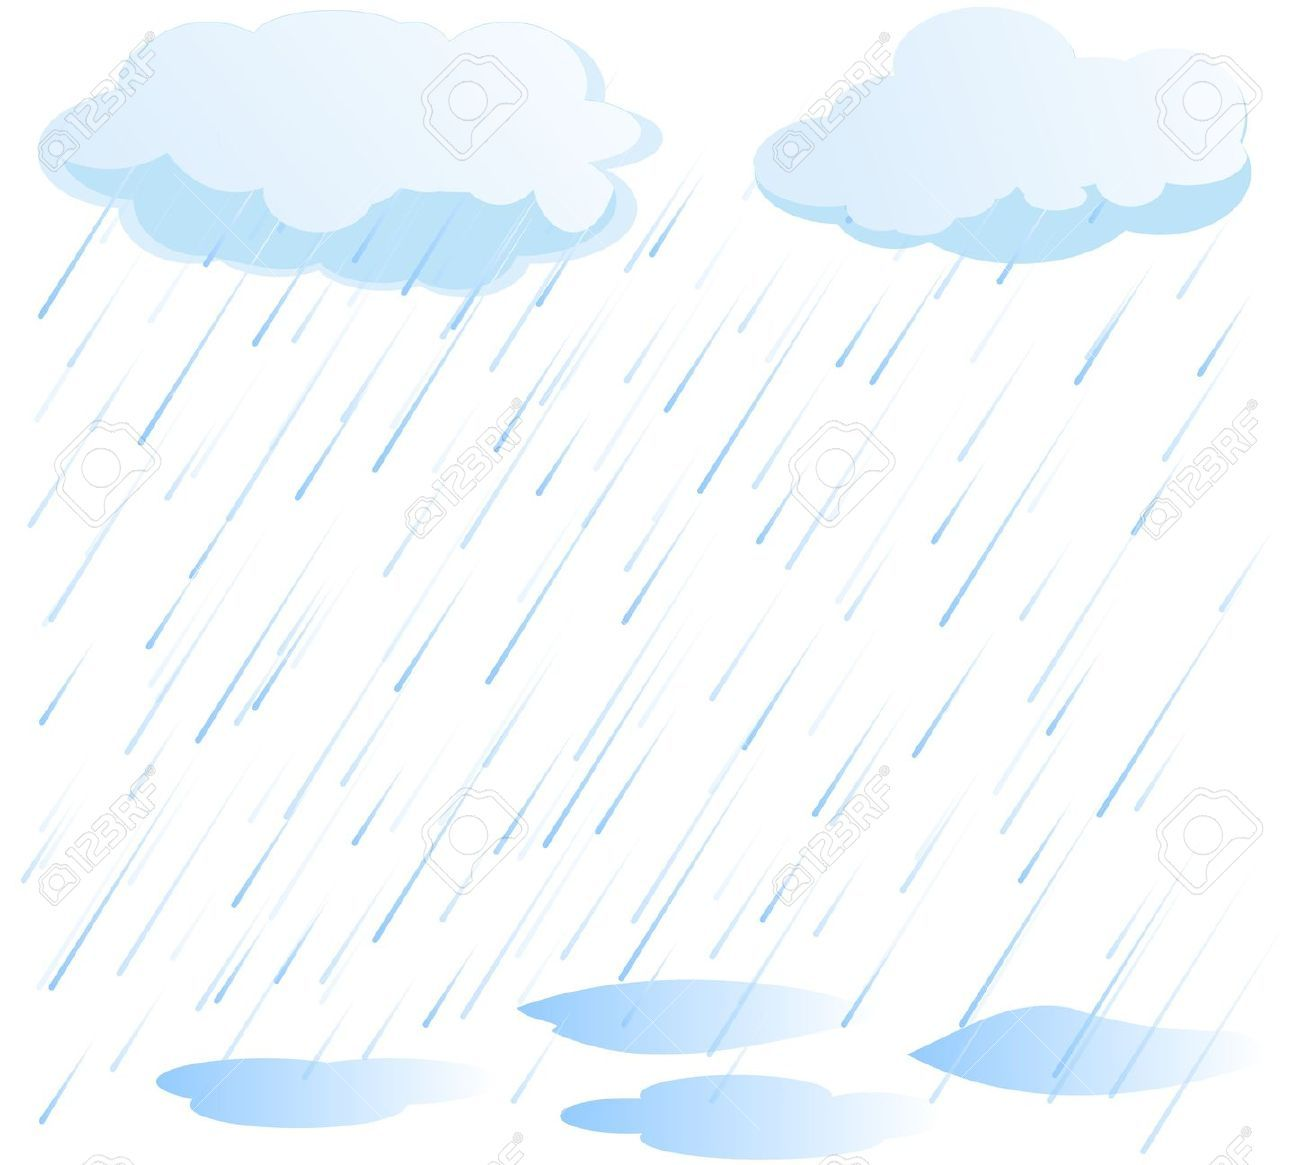 Rainy day background clipart » Clipart Portal.